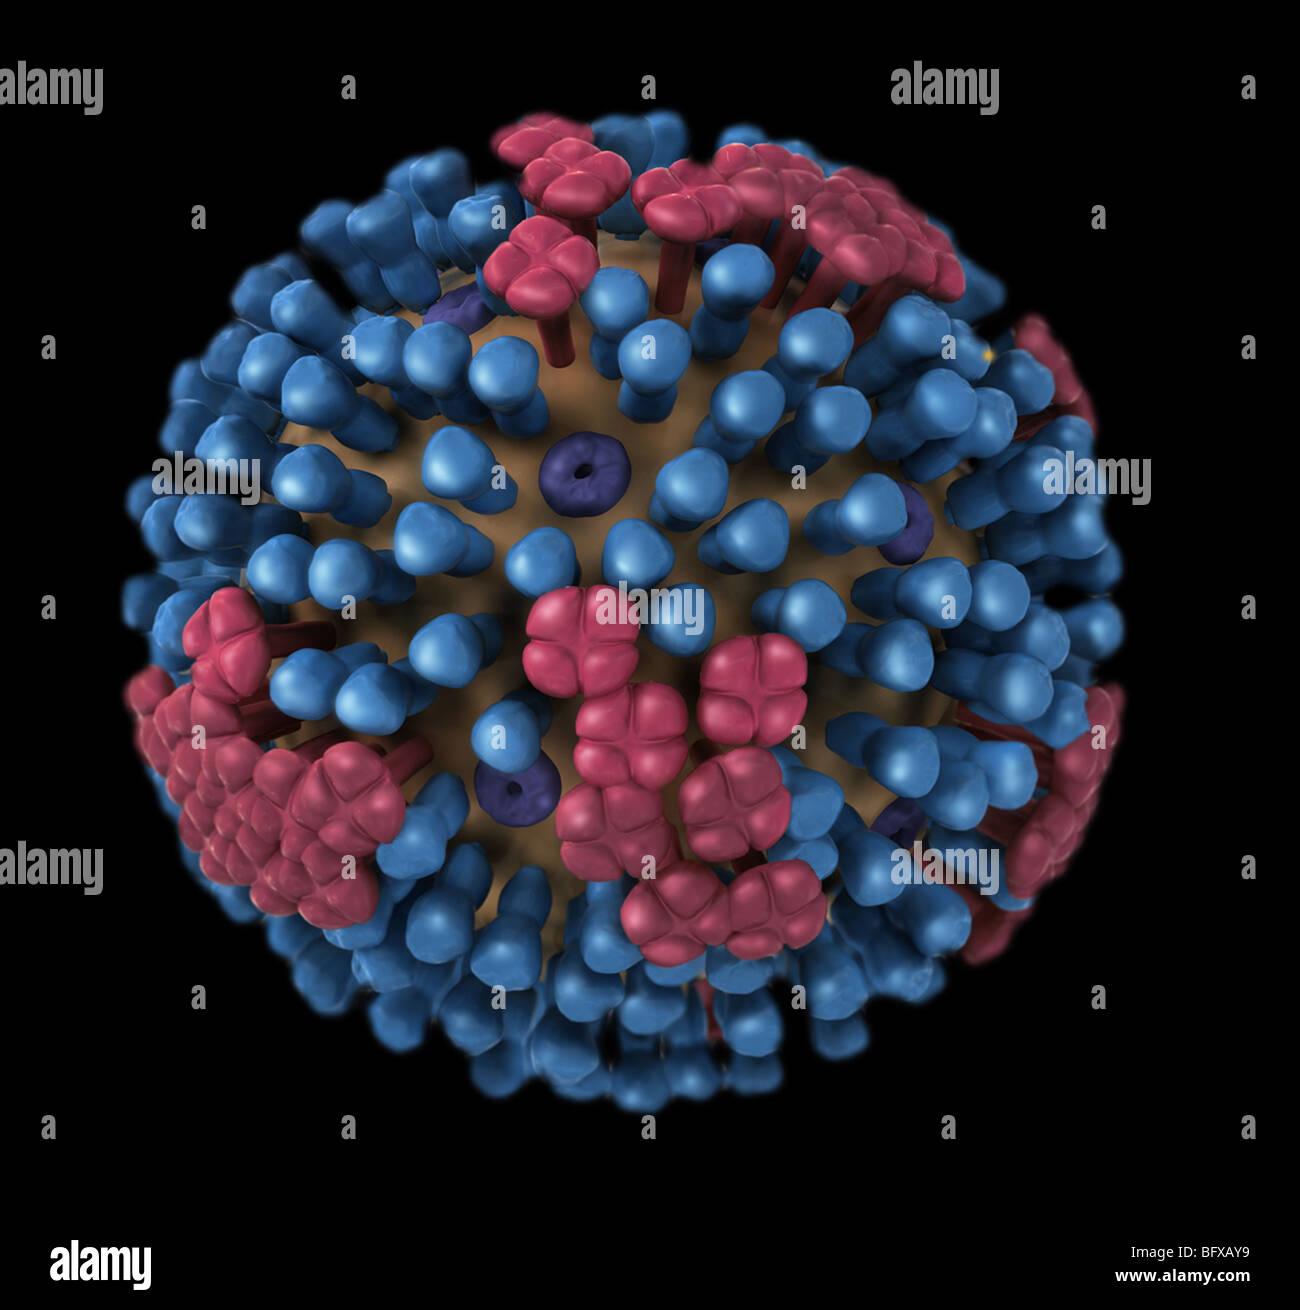 3D graphical representation of a generic influenza virion's ultrastructure. - Stock Image